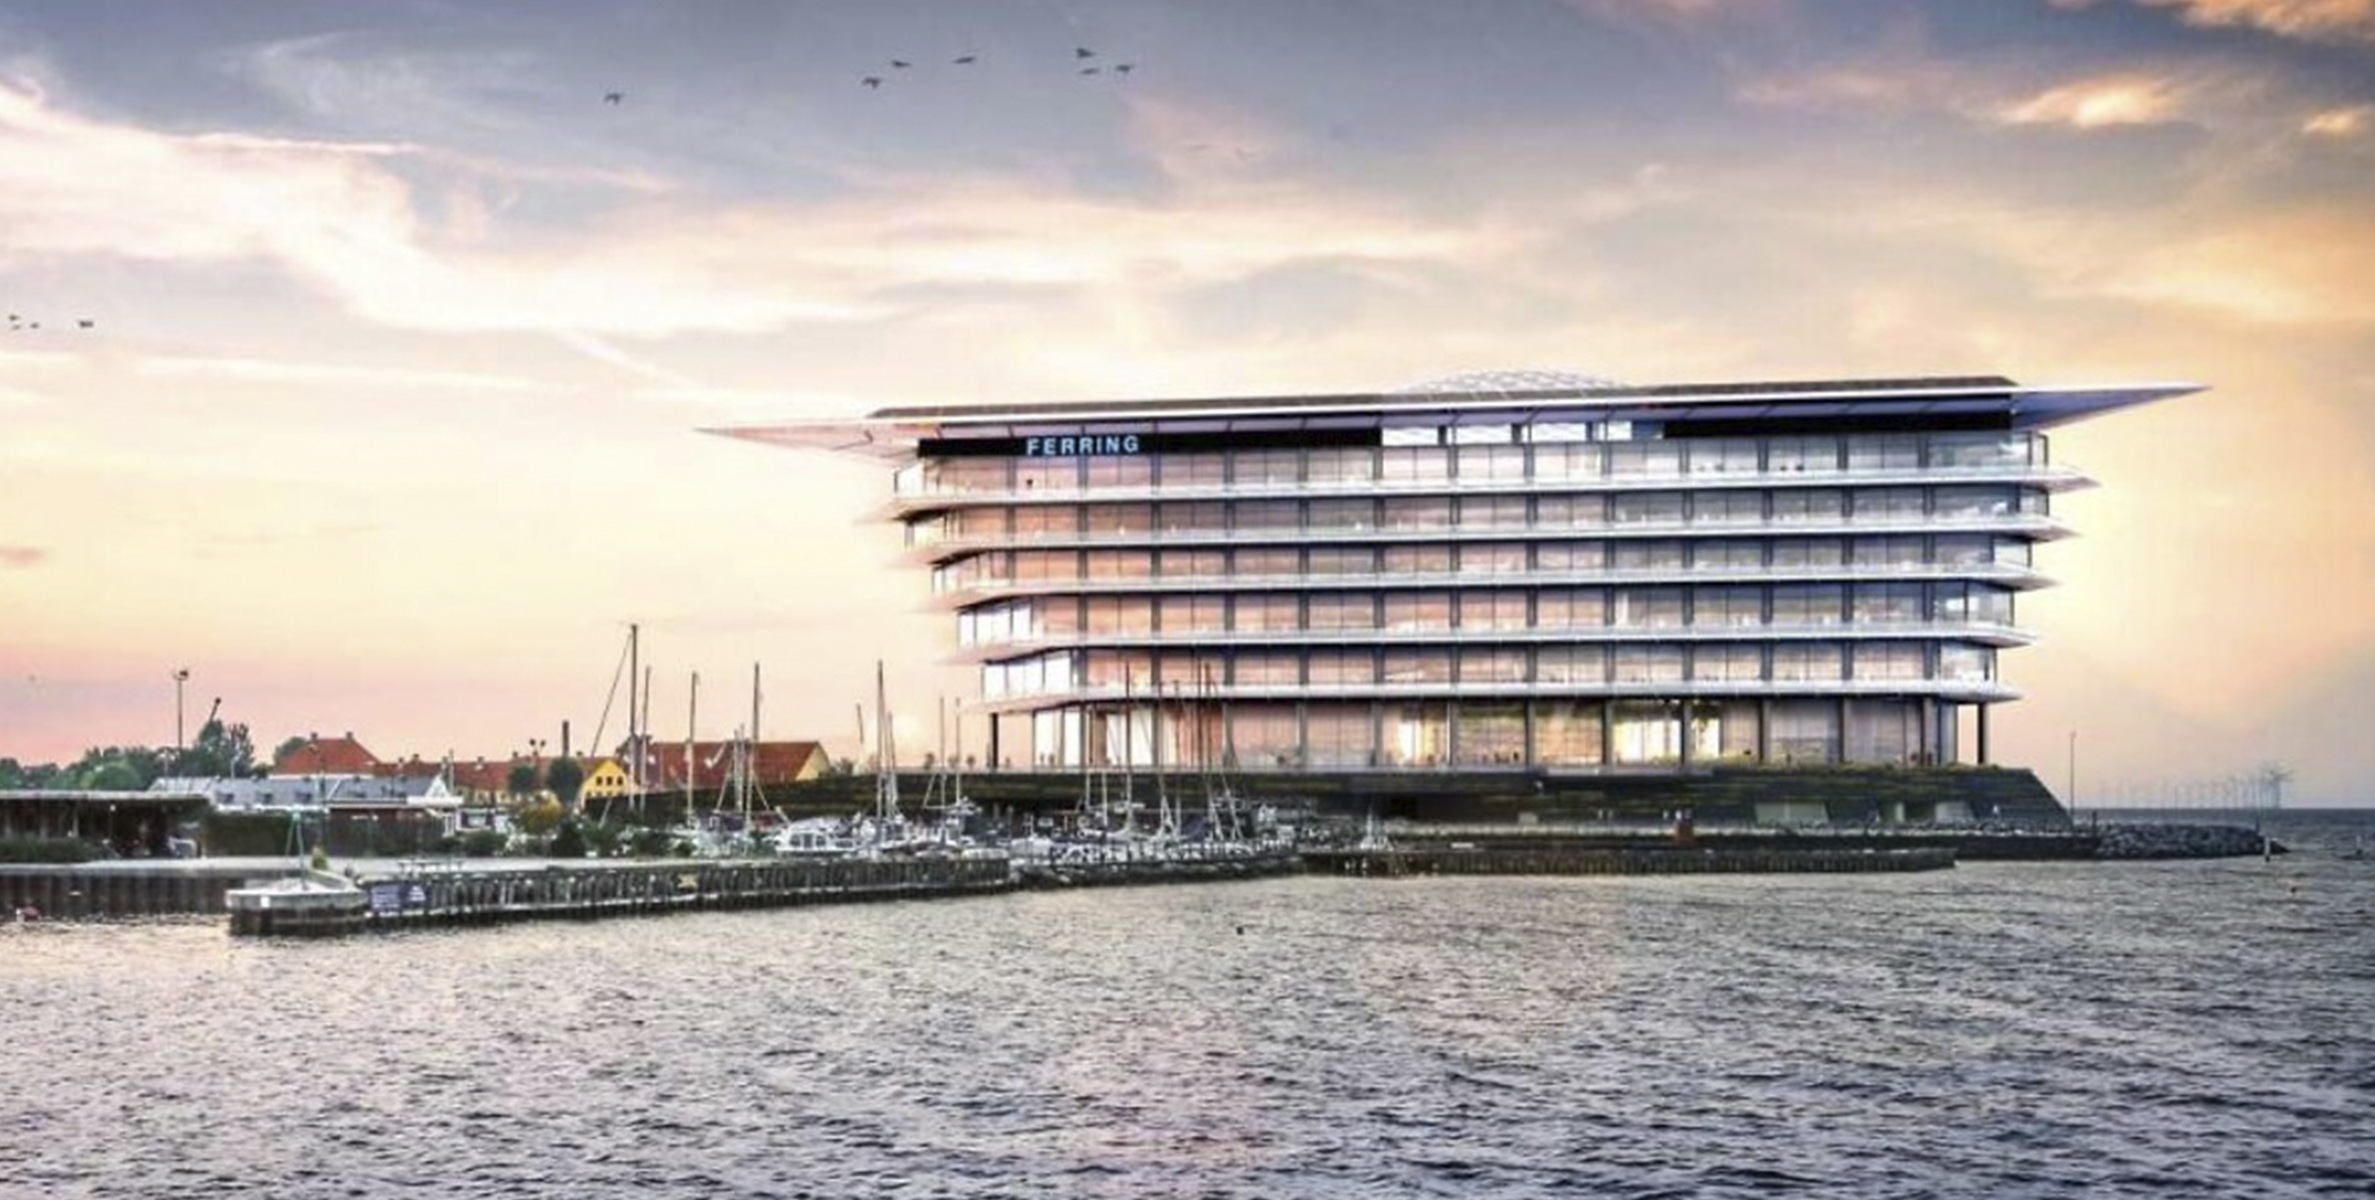 ferring-drug-discovery-and-early-clinical-development-r-and-d-site-copenhagen-v2